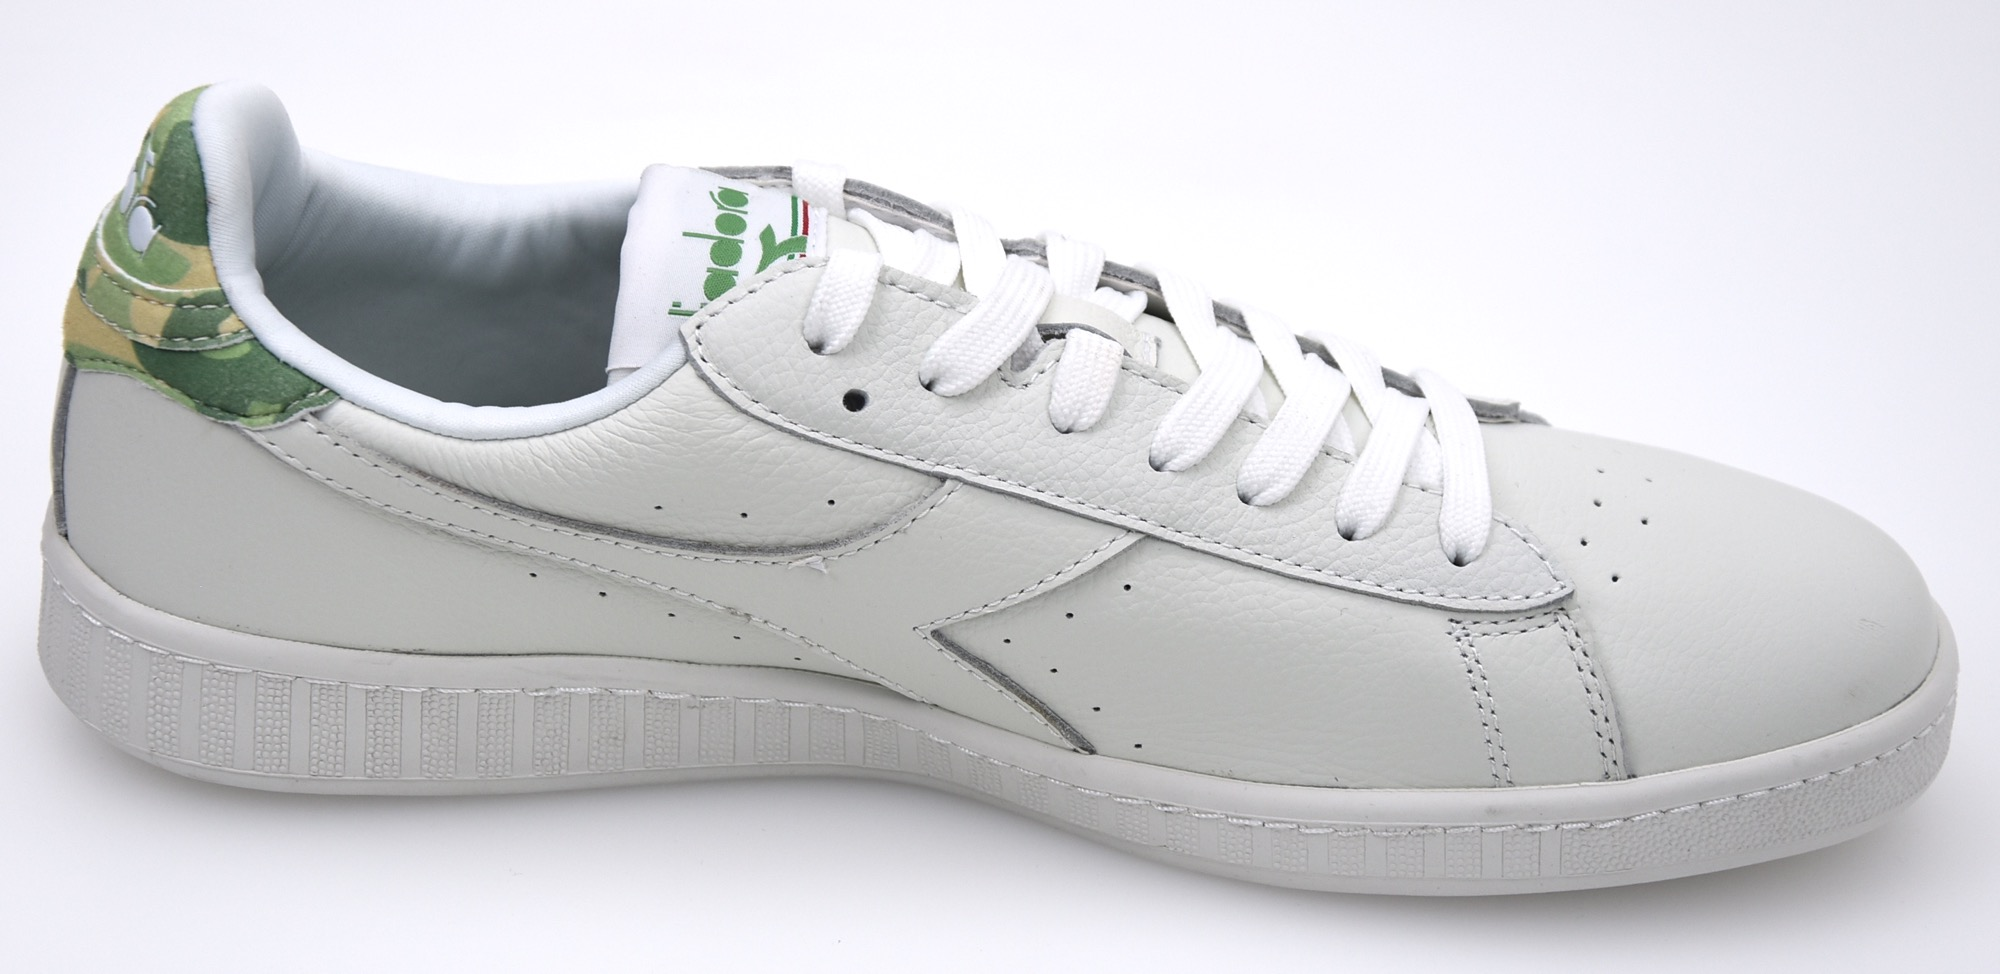 af1d9009 Details about DIADORA MAN SNEAKER SHOES LEATHER CASUAL FREE TIME 501.171856  01 GAME L LOW CAMO